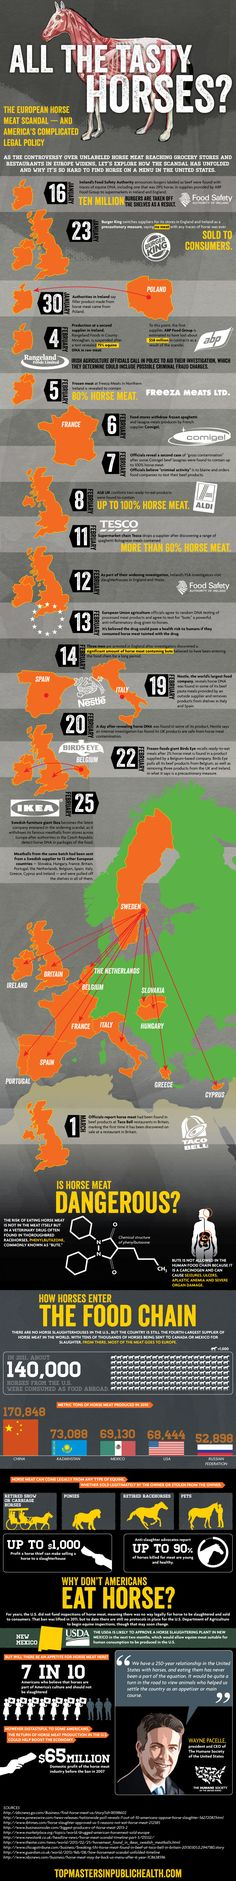 The European Horse Meat Scandal Explained (Infographic)